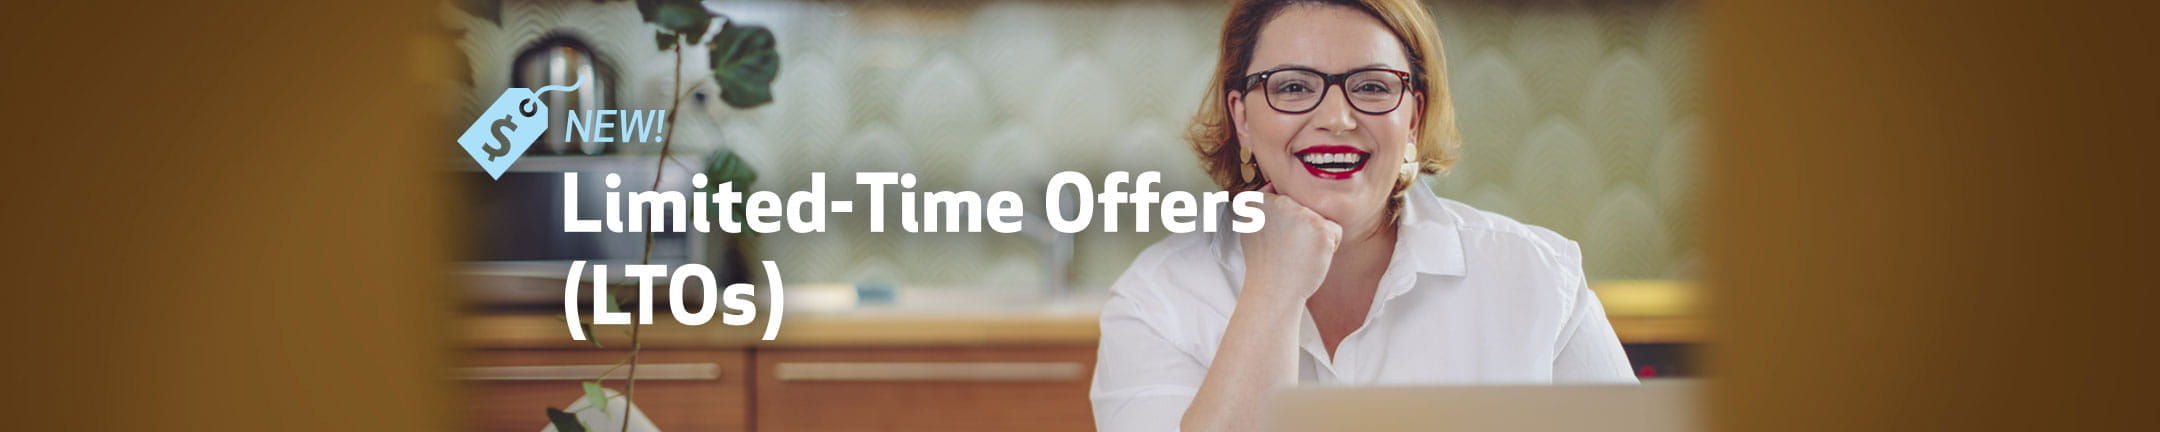 Limited-Time Offers (LTOs) - New!